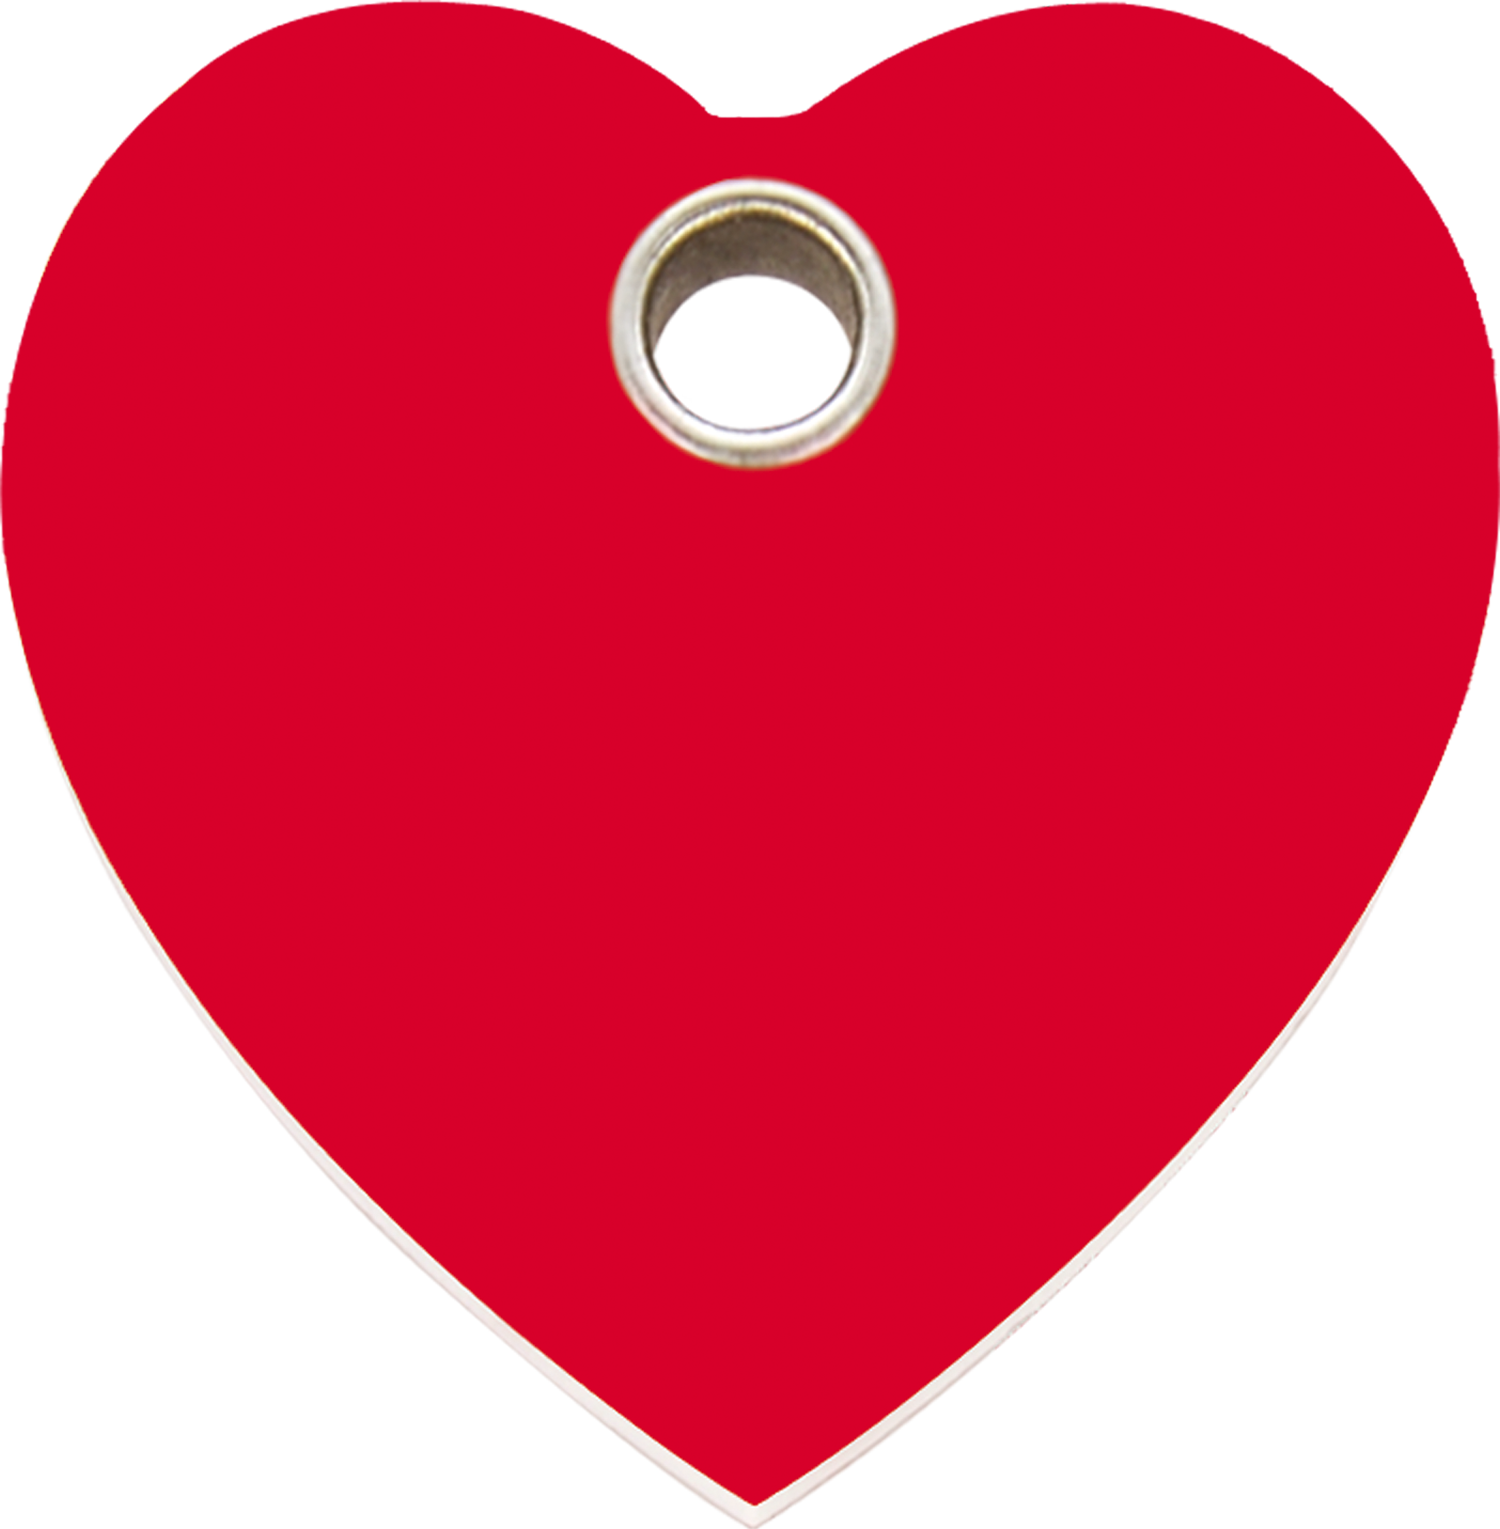 Heart clipart donut. Red dingo plastic tag